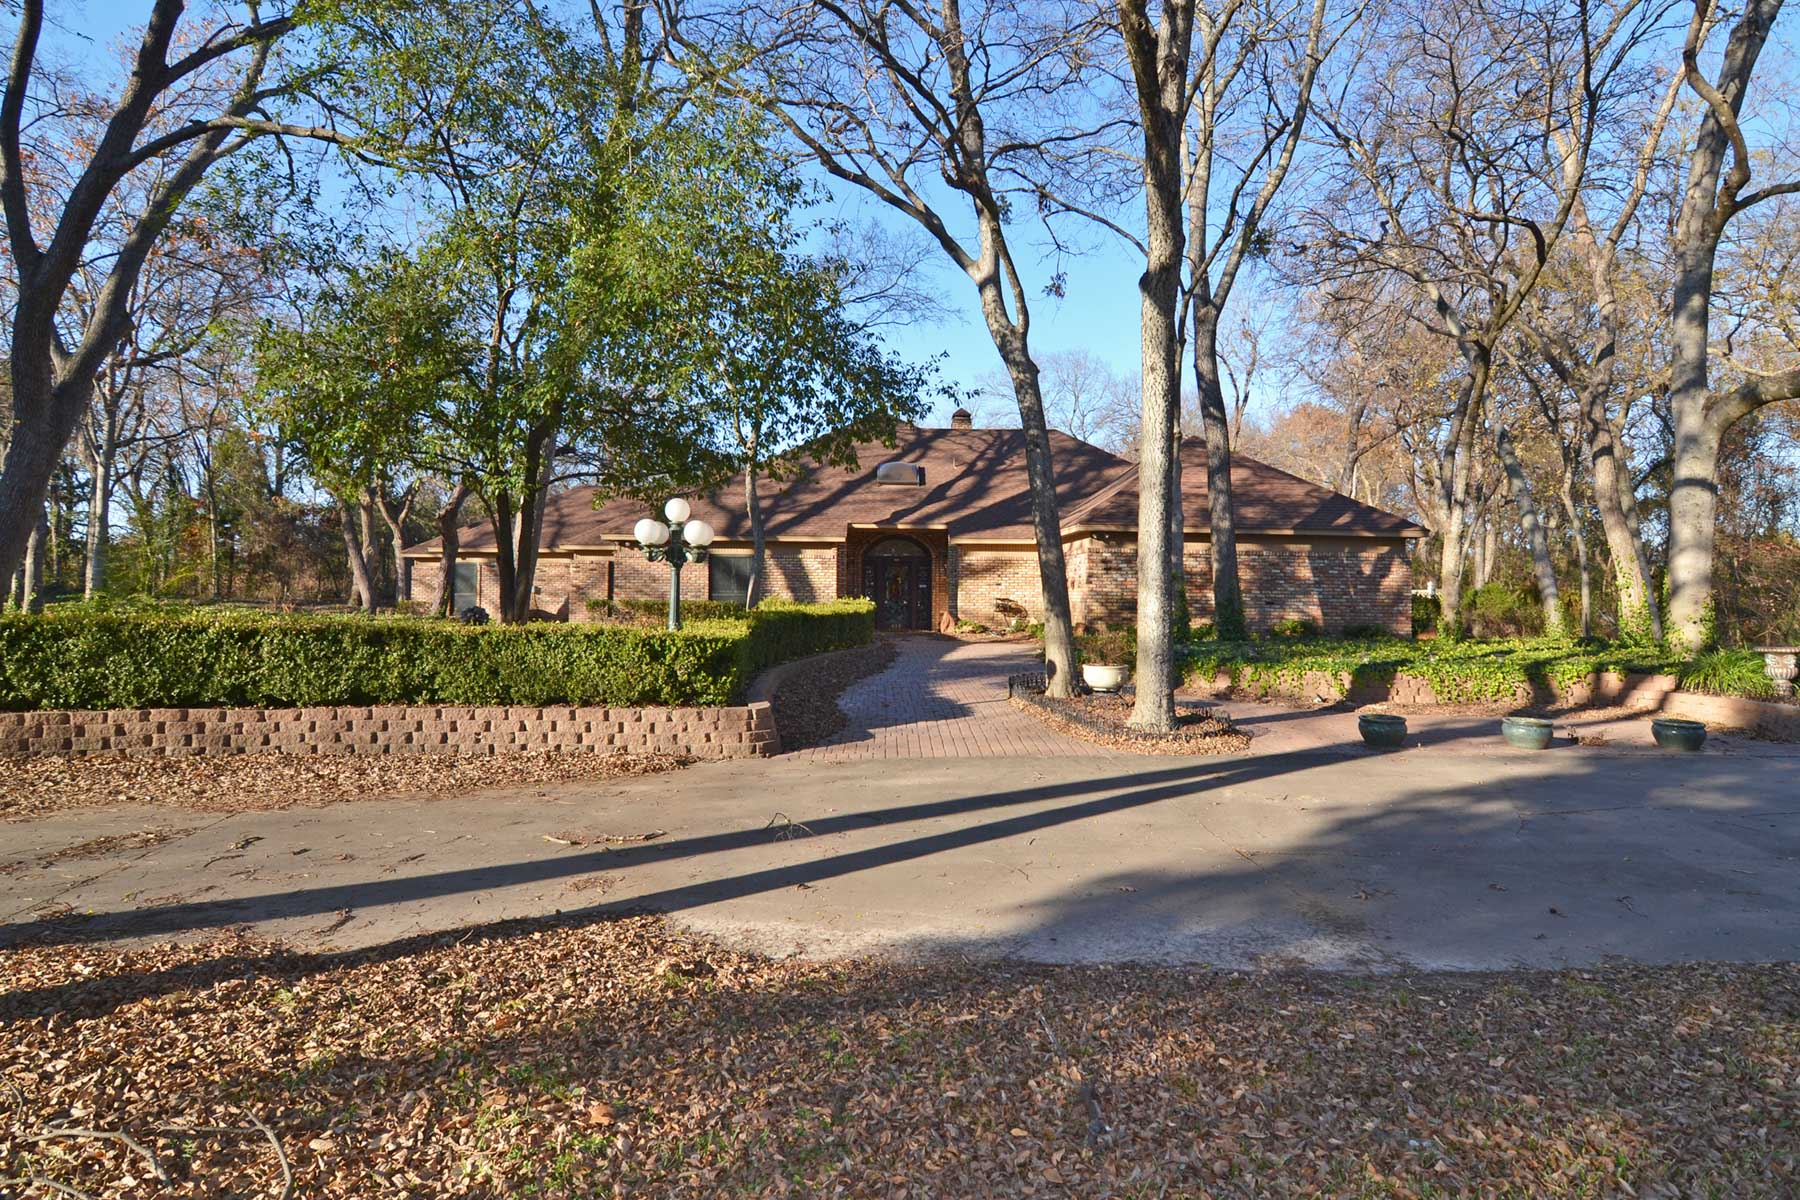 Single Family Home for Sale at Terrific Opportunity 2.4 acres with full workshop 619 Pecan Creek Drive Sunnyvale, Texas 75182 United States